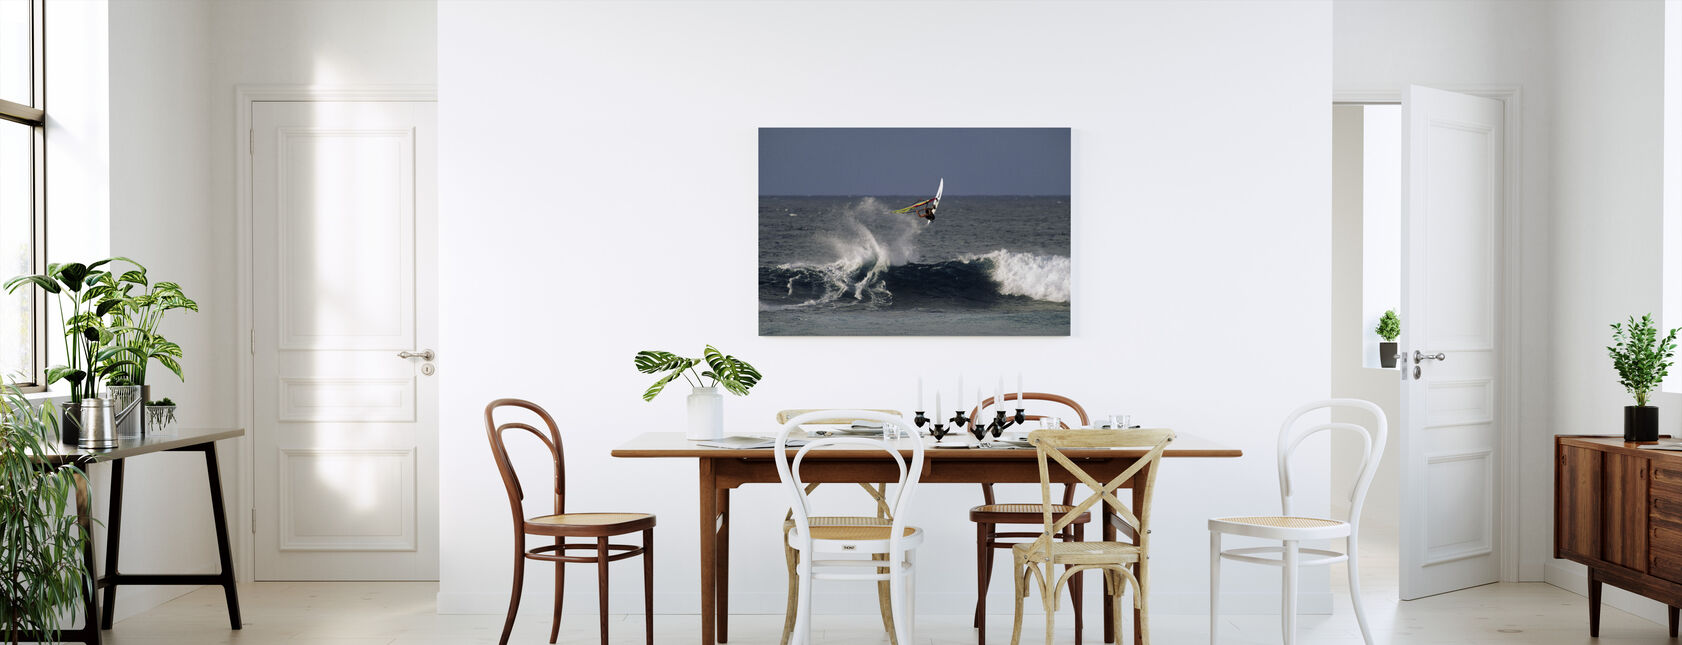 Windsurfer at Hookipa Beach Park - Canvas print - Kitchen